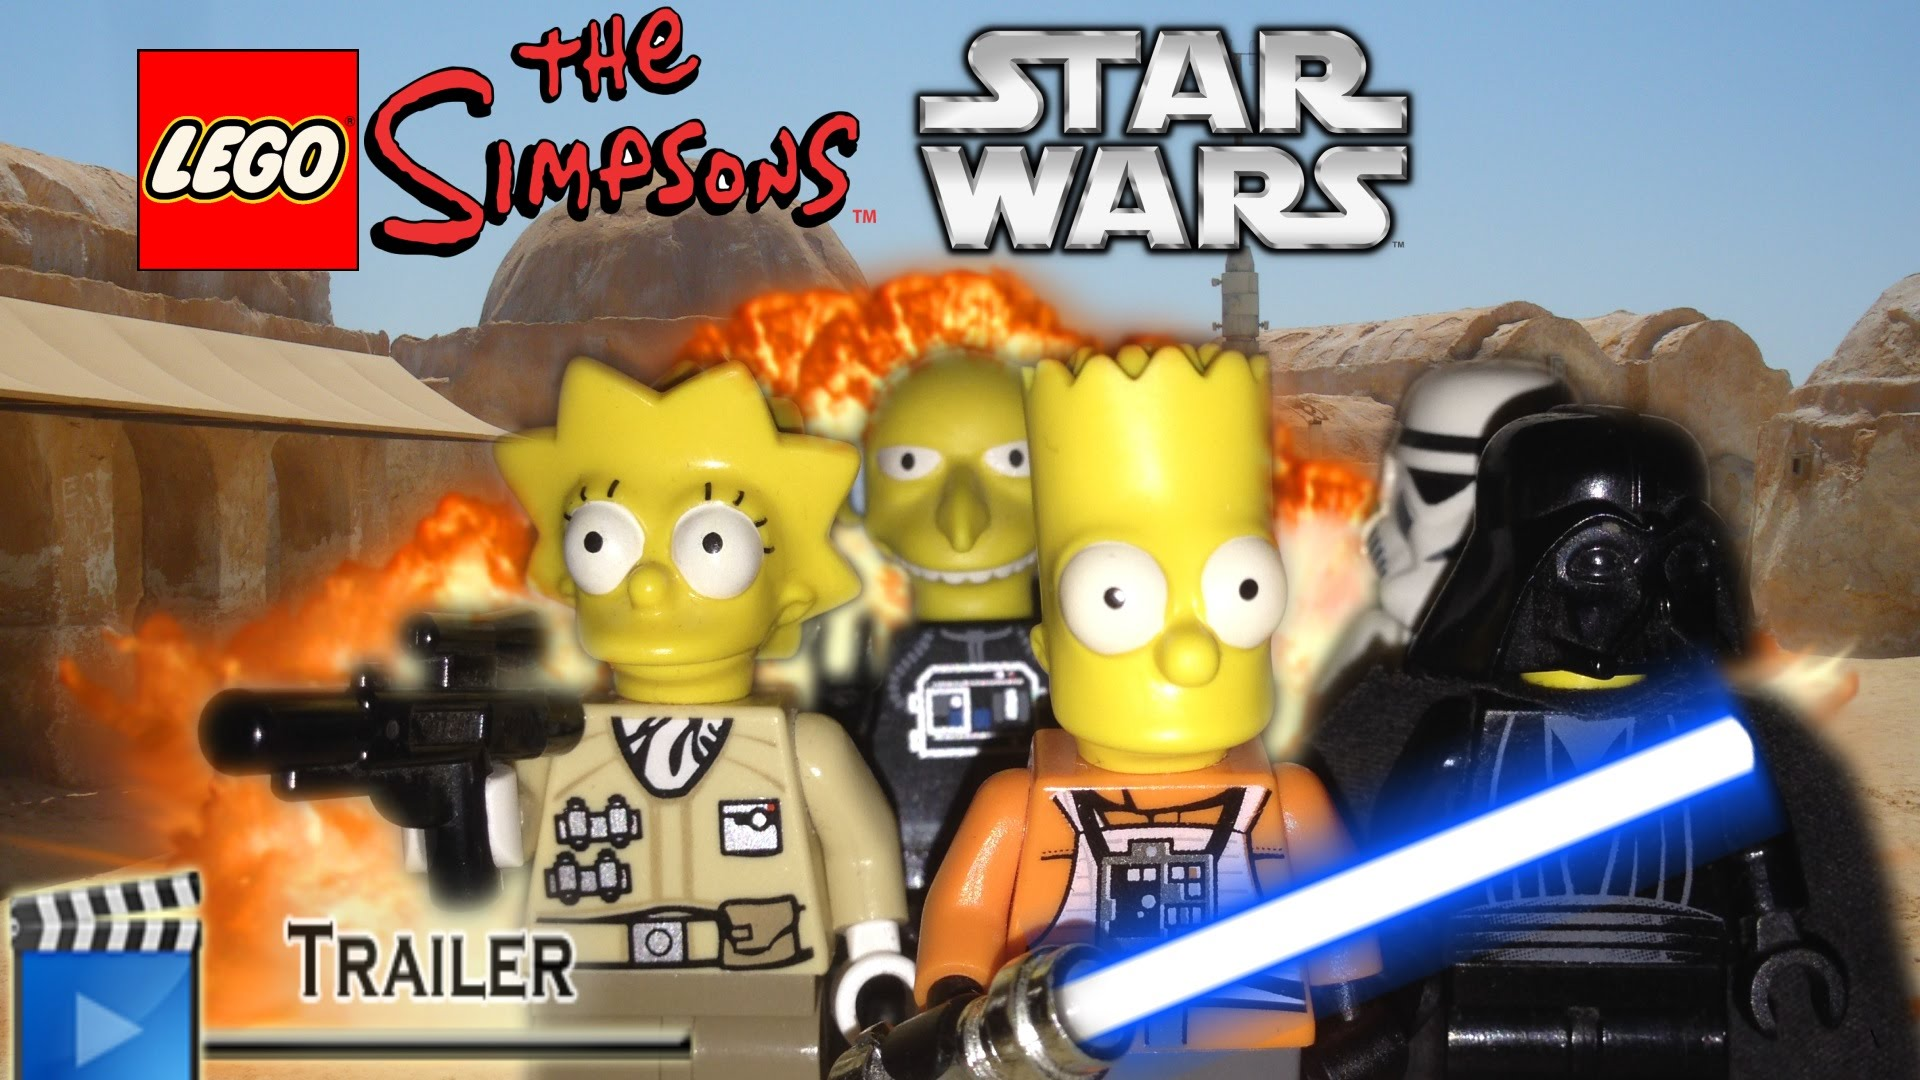 The Simpsons - Star Wars Parody Backgrounds, Compatible - PC, Mobile, Gadgets| 1920x1080 px